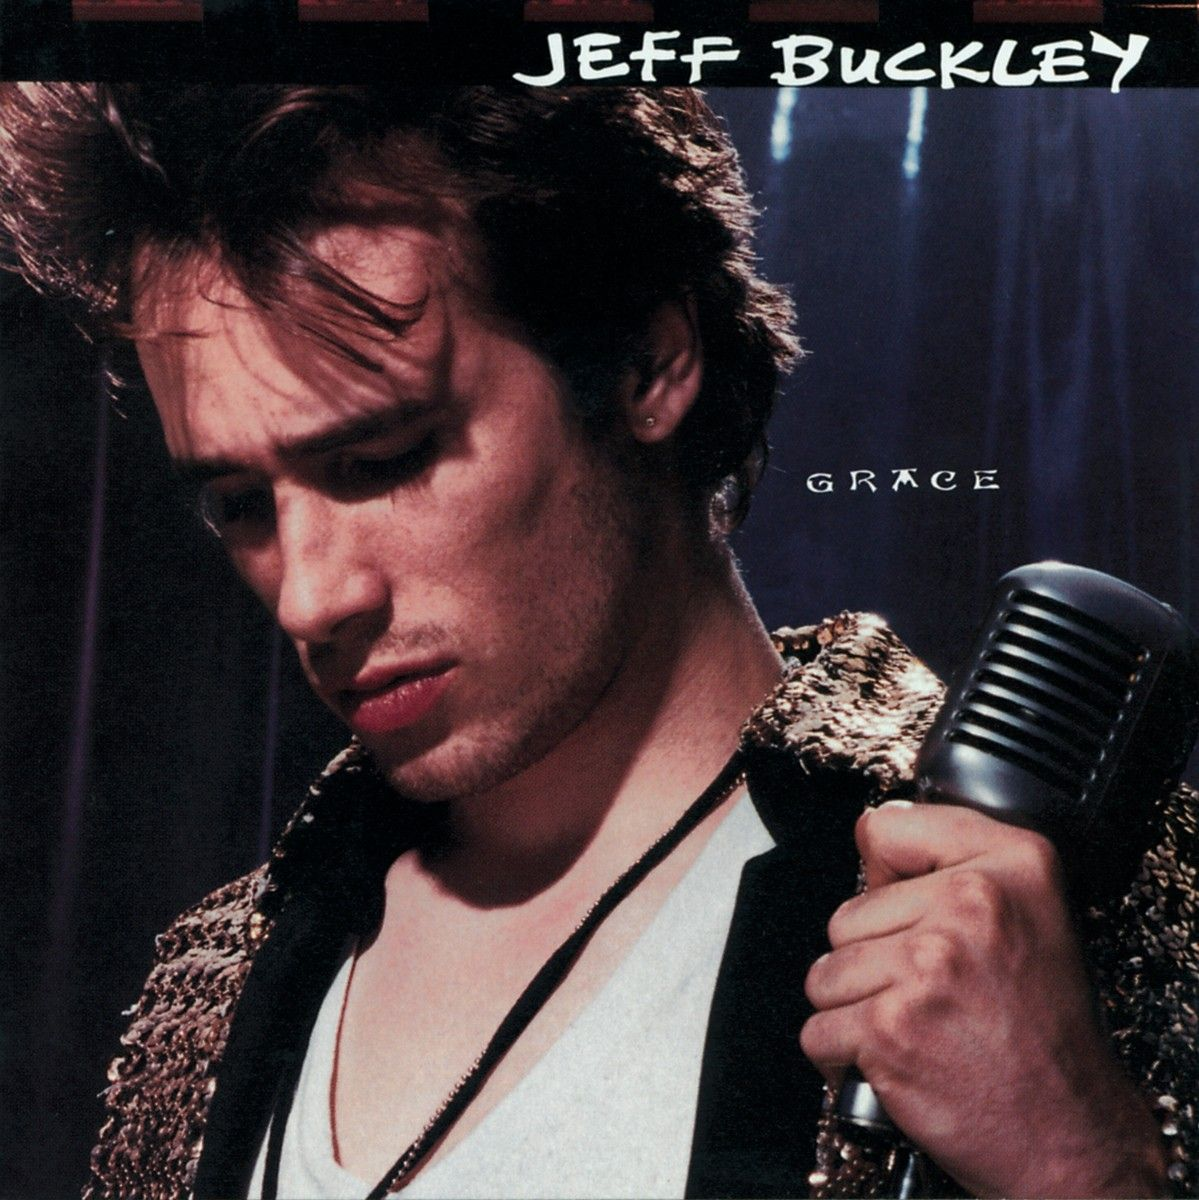 Jeff Buckley - Grace album cover